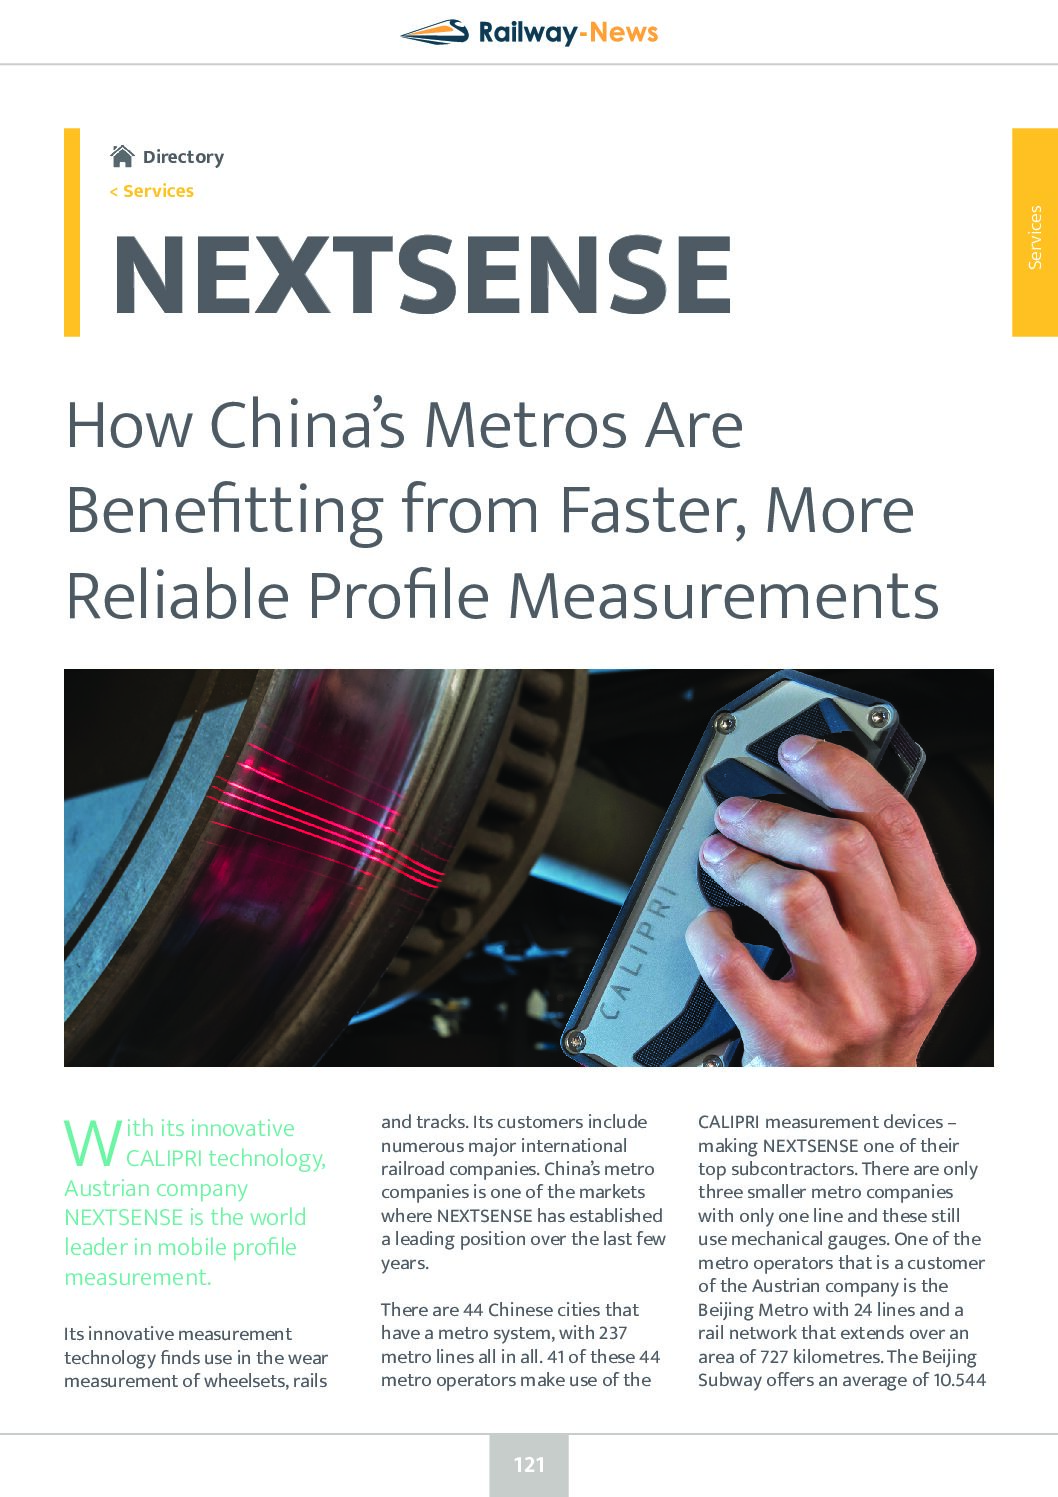 How China's Metros Are Benefitting from Faster, More Reliable Profile Measurements